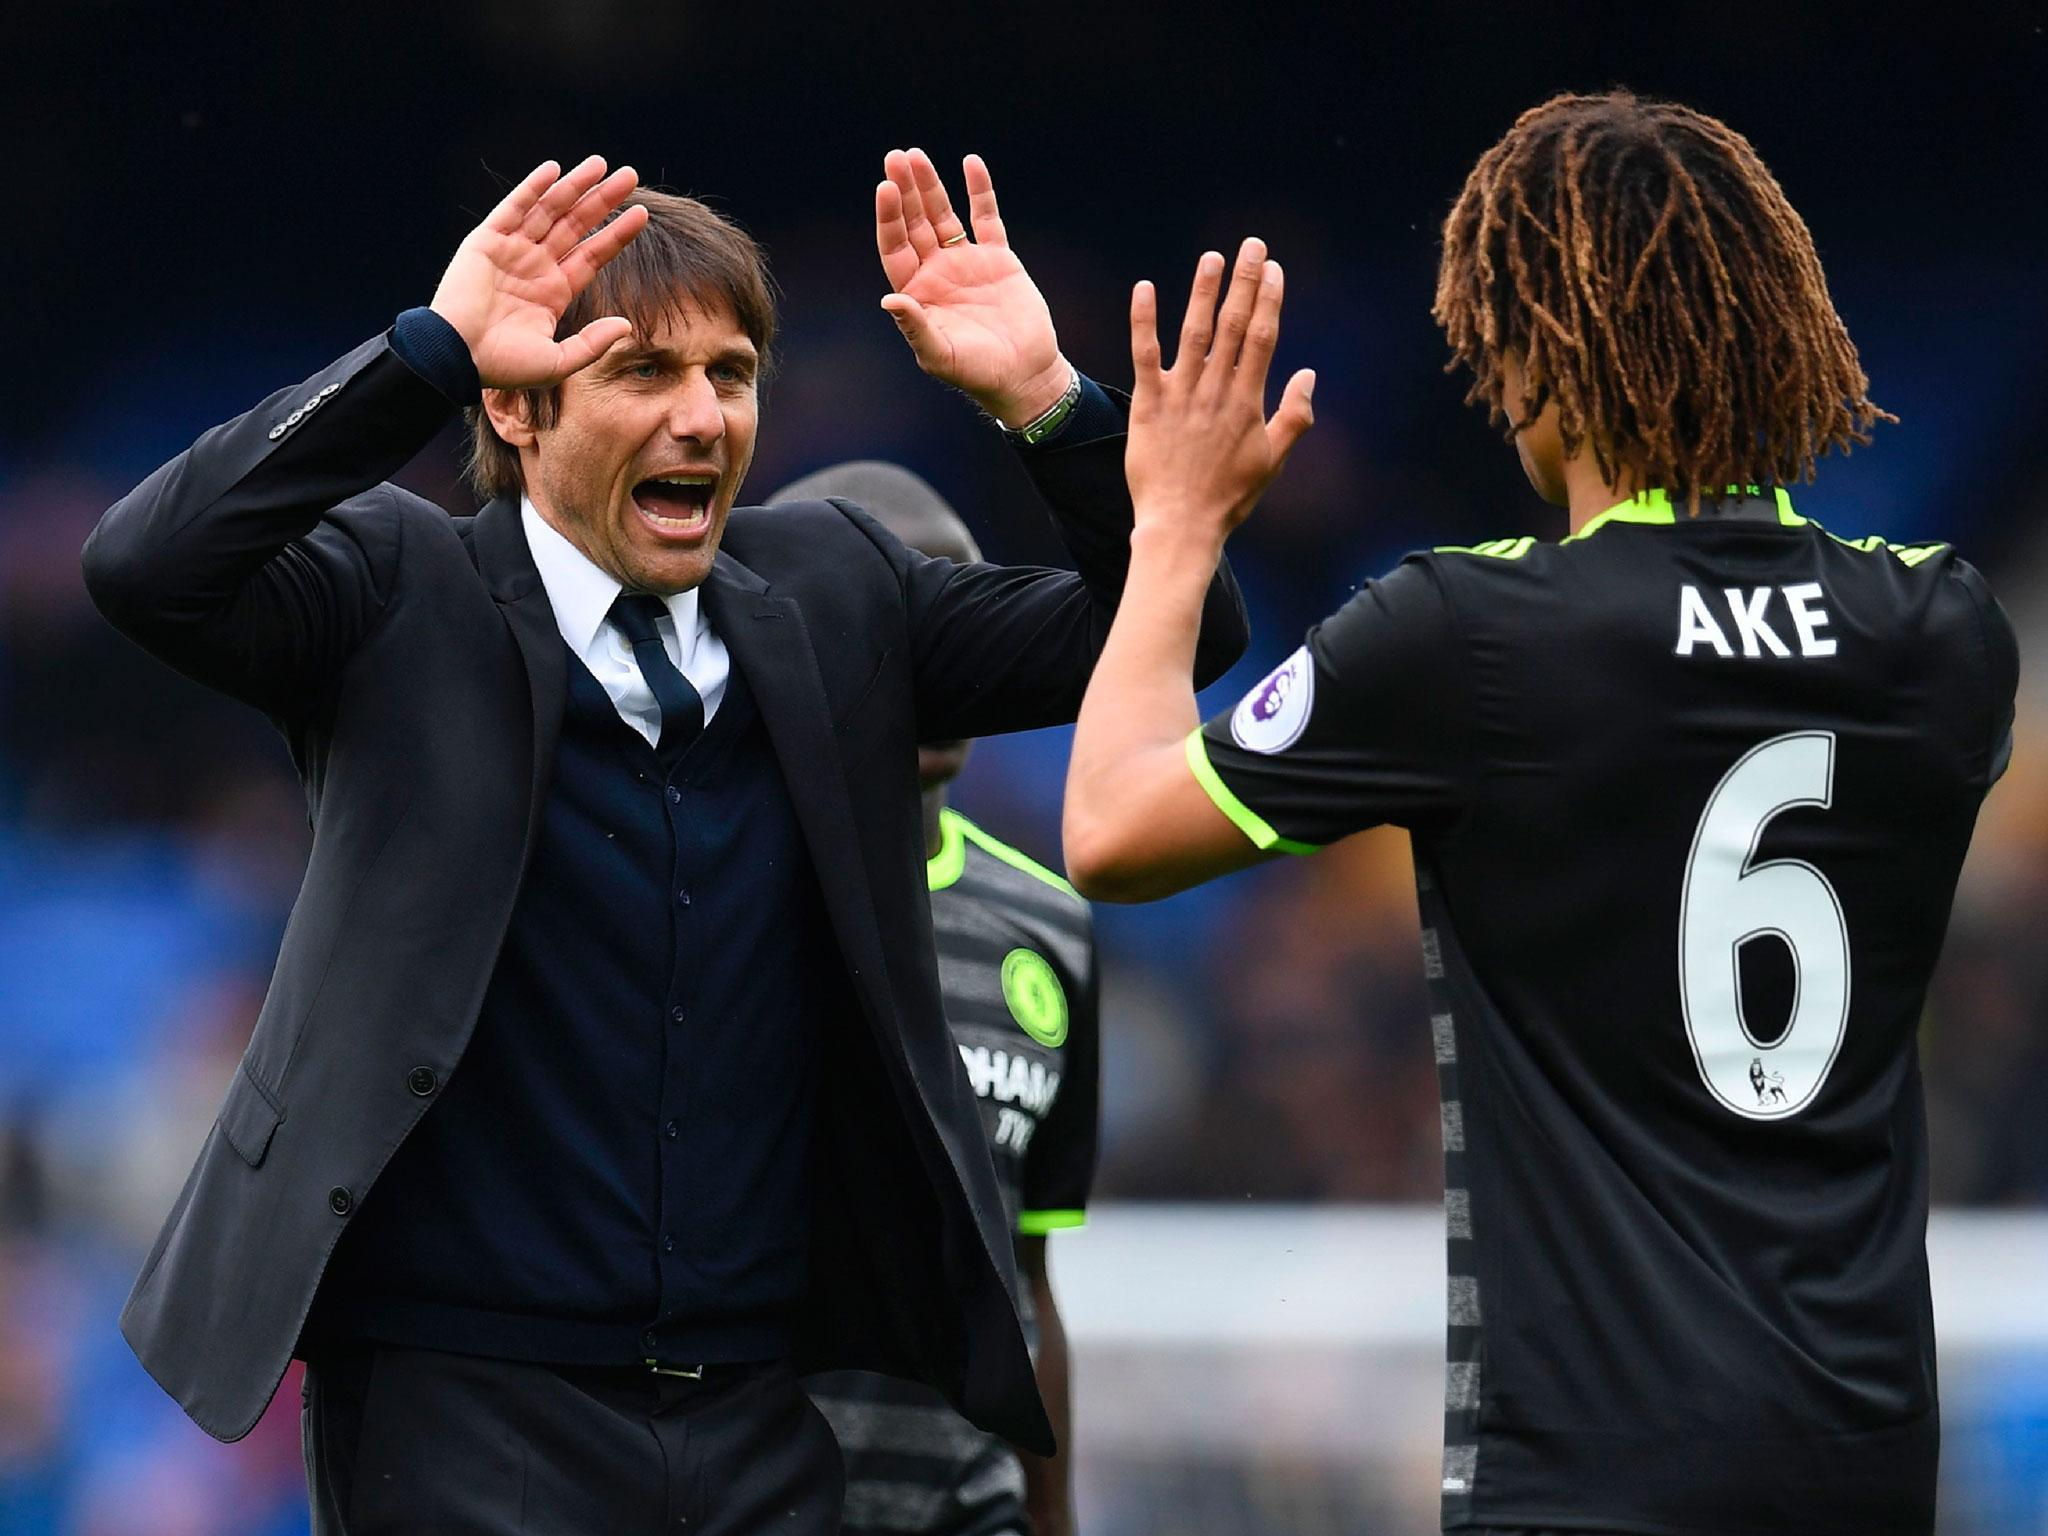 ake. antonio conte backs nathan ake to replace david luiz - if he needs | the independent p